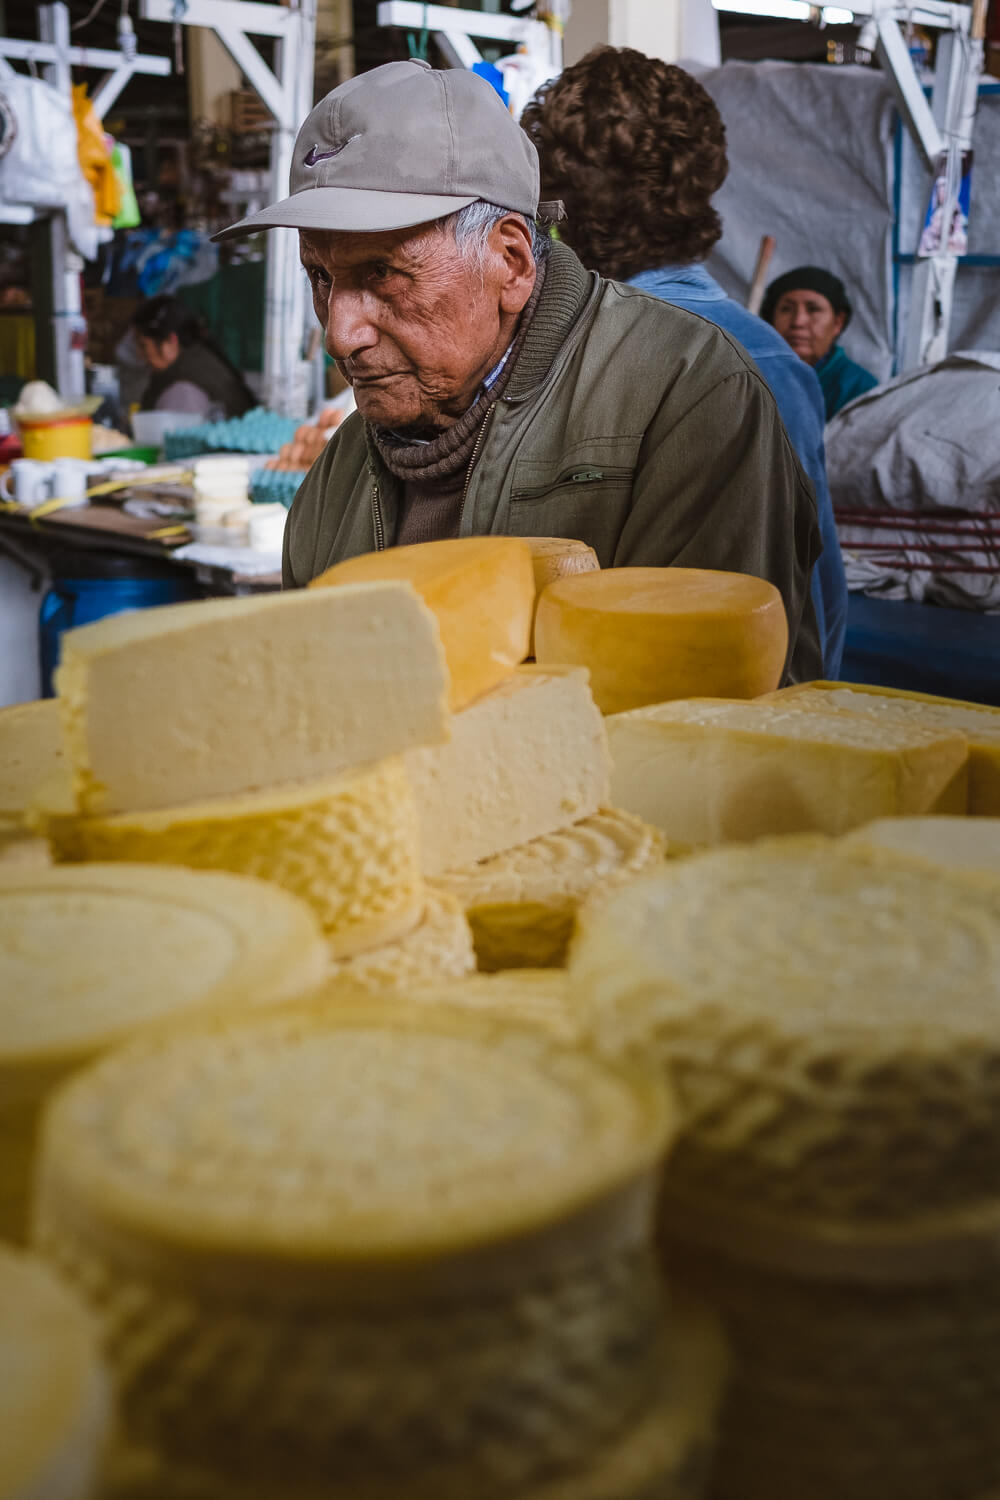 """Man buying cheese in the San Pedro Market, Cusco. Travel photography and guide by © Natasha Lequepeys for """"And Then I Met Yoko"""". #cusco #peru #photoblog #travelblog #peruitinerary #cuscoitinerary"""